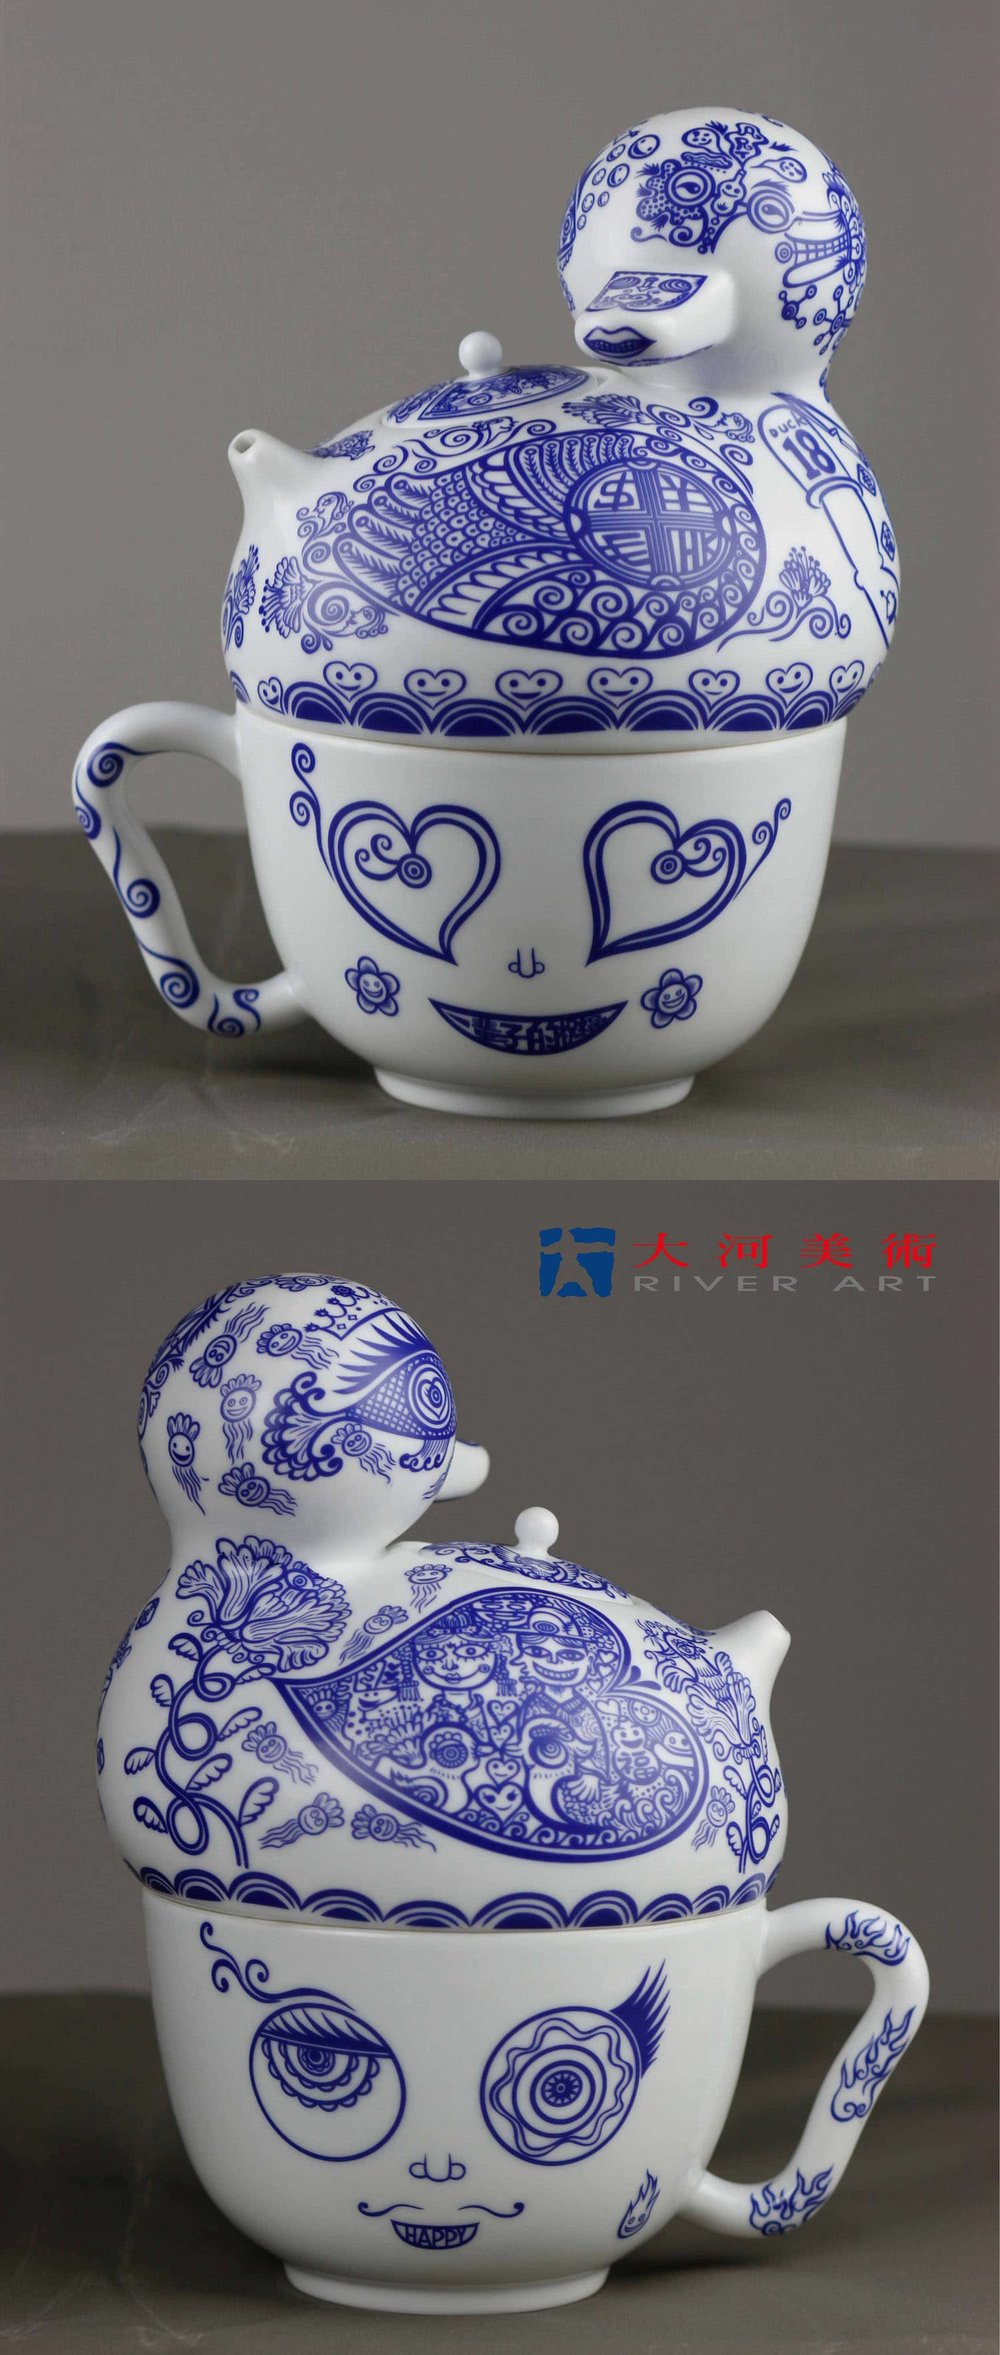 洪易 HUNG Yi〈一輩子的祝福-青花鴨壺杯組 A Blessing for a Lifetime-Blue and White Duck Teapot and Cup〉